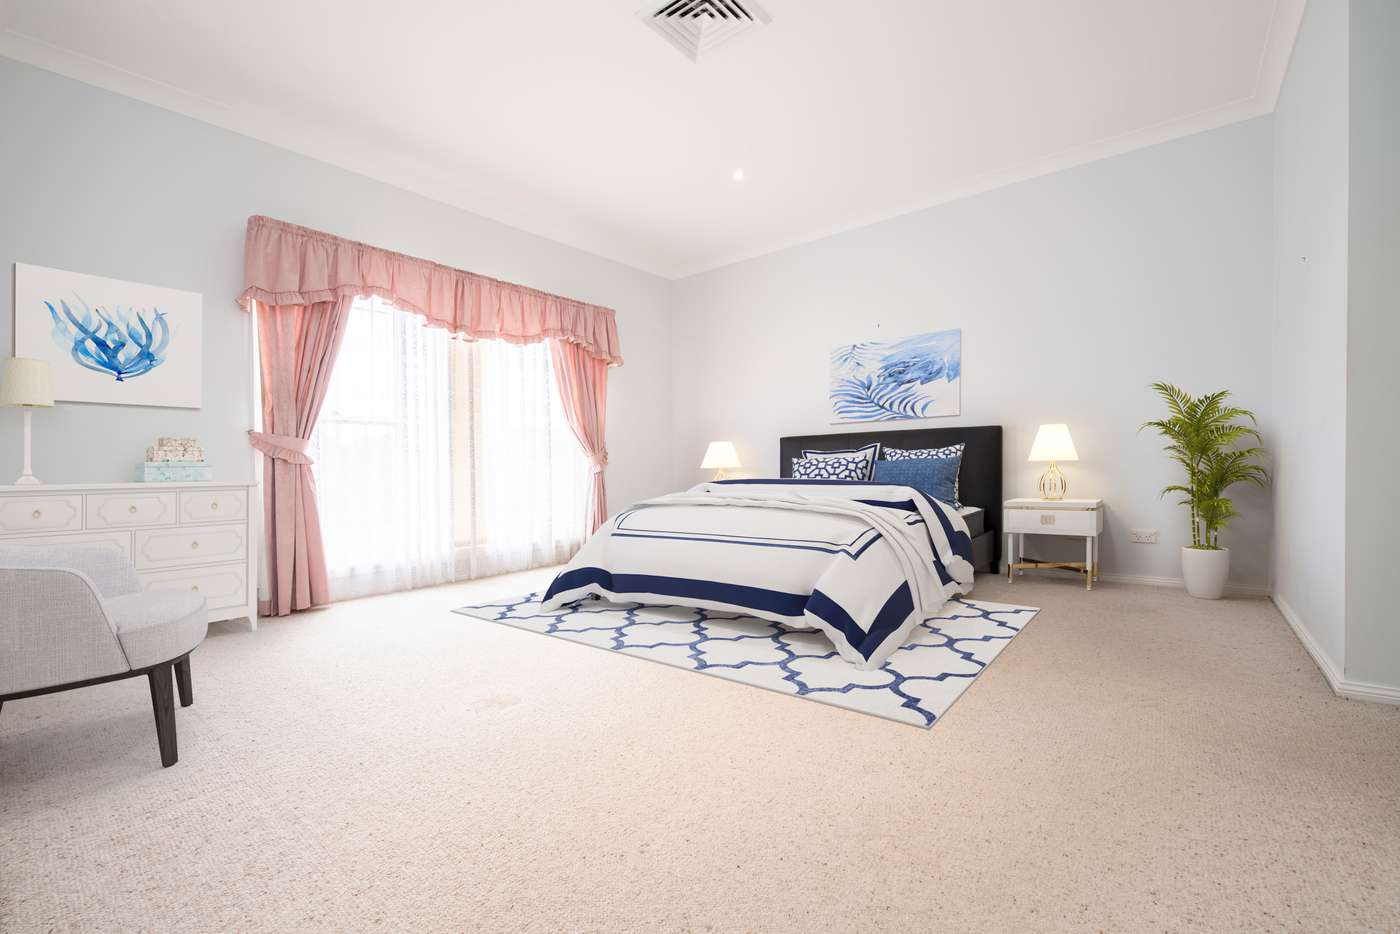 Sixth view of Homely house listing, 18 Kilgallin Close, Scone NSW 2337